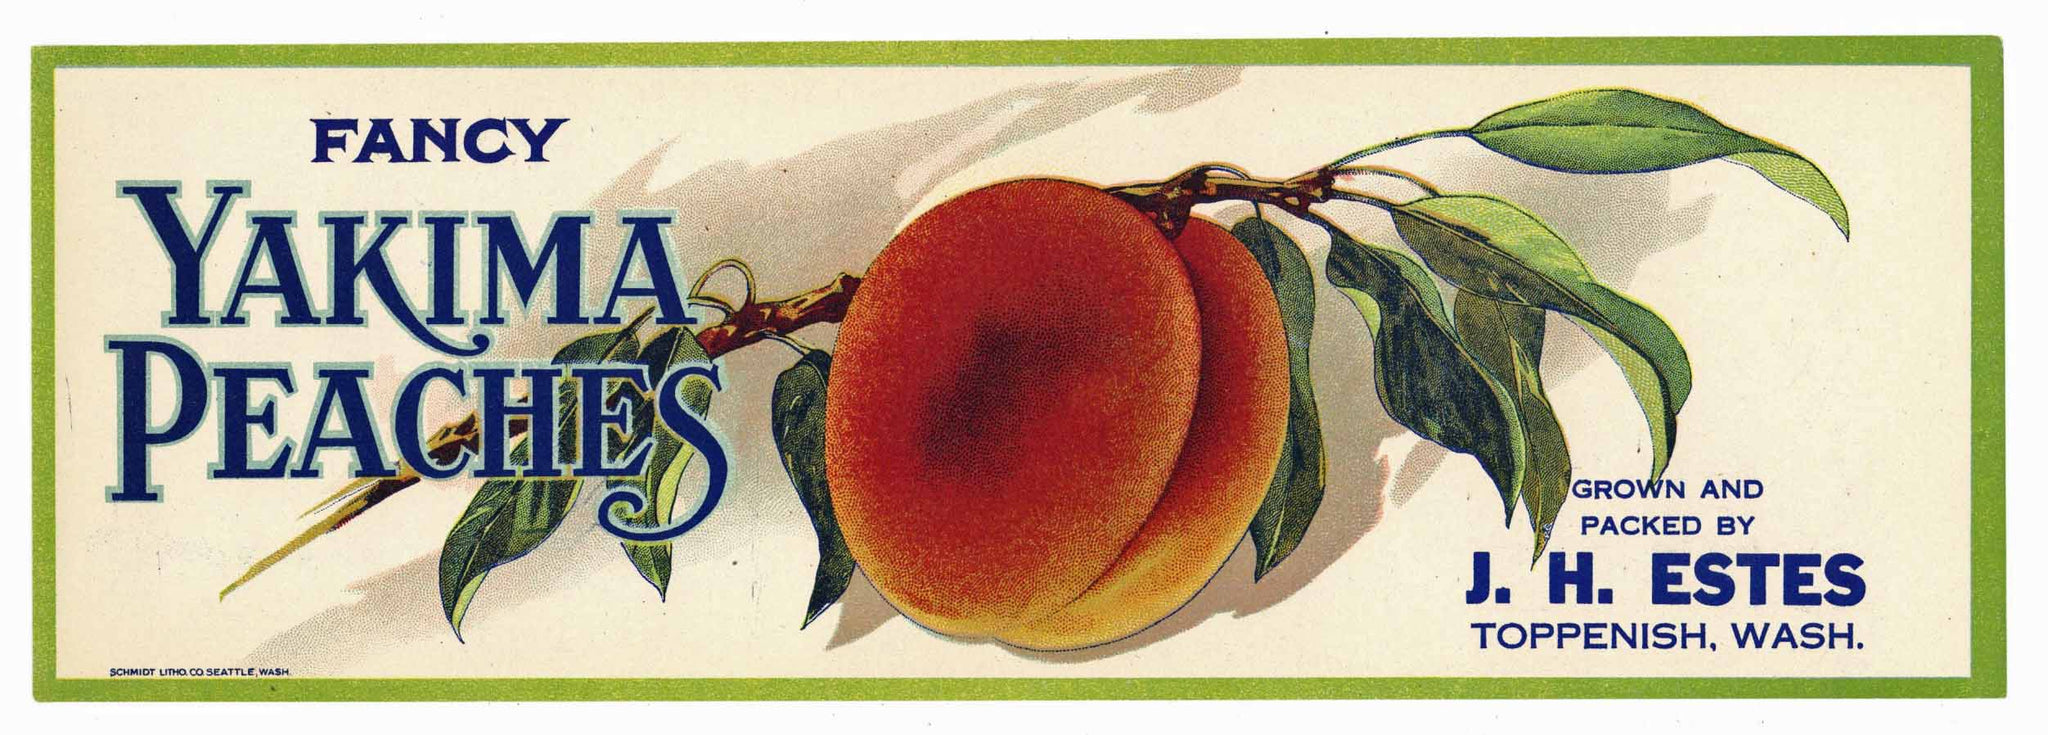 Yakima Peaches Brand Vintage Toppenish Washington Peach Crate Label